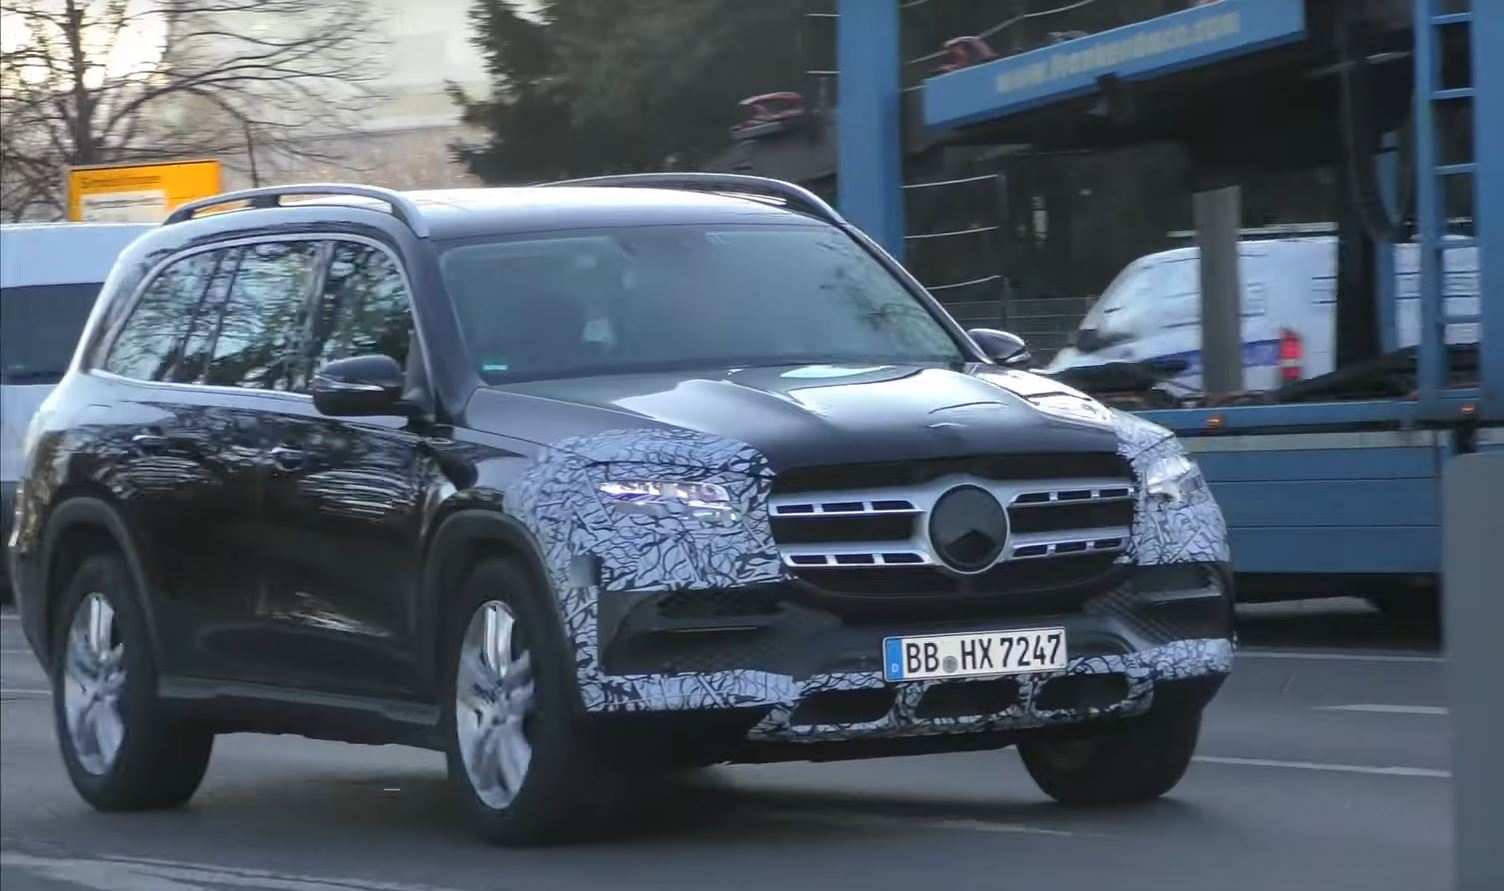 Mercedes-AMG shows GLE 53 with 48V hybrid tech, 450 hp